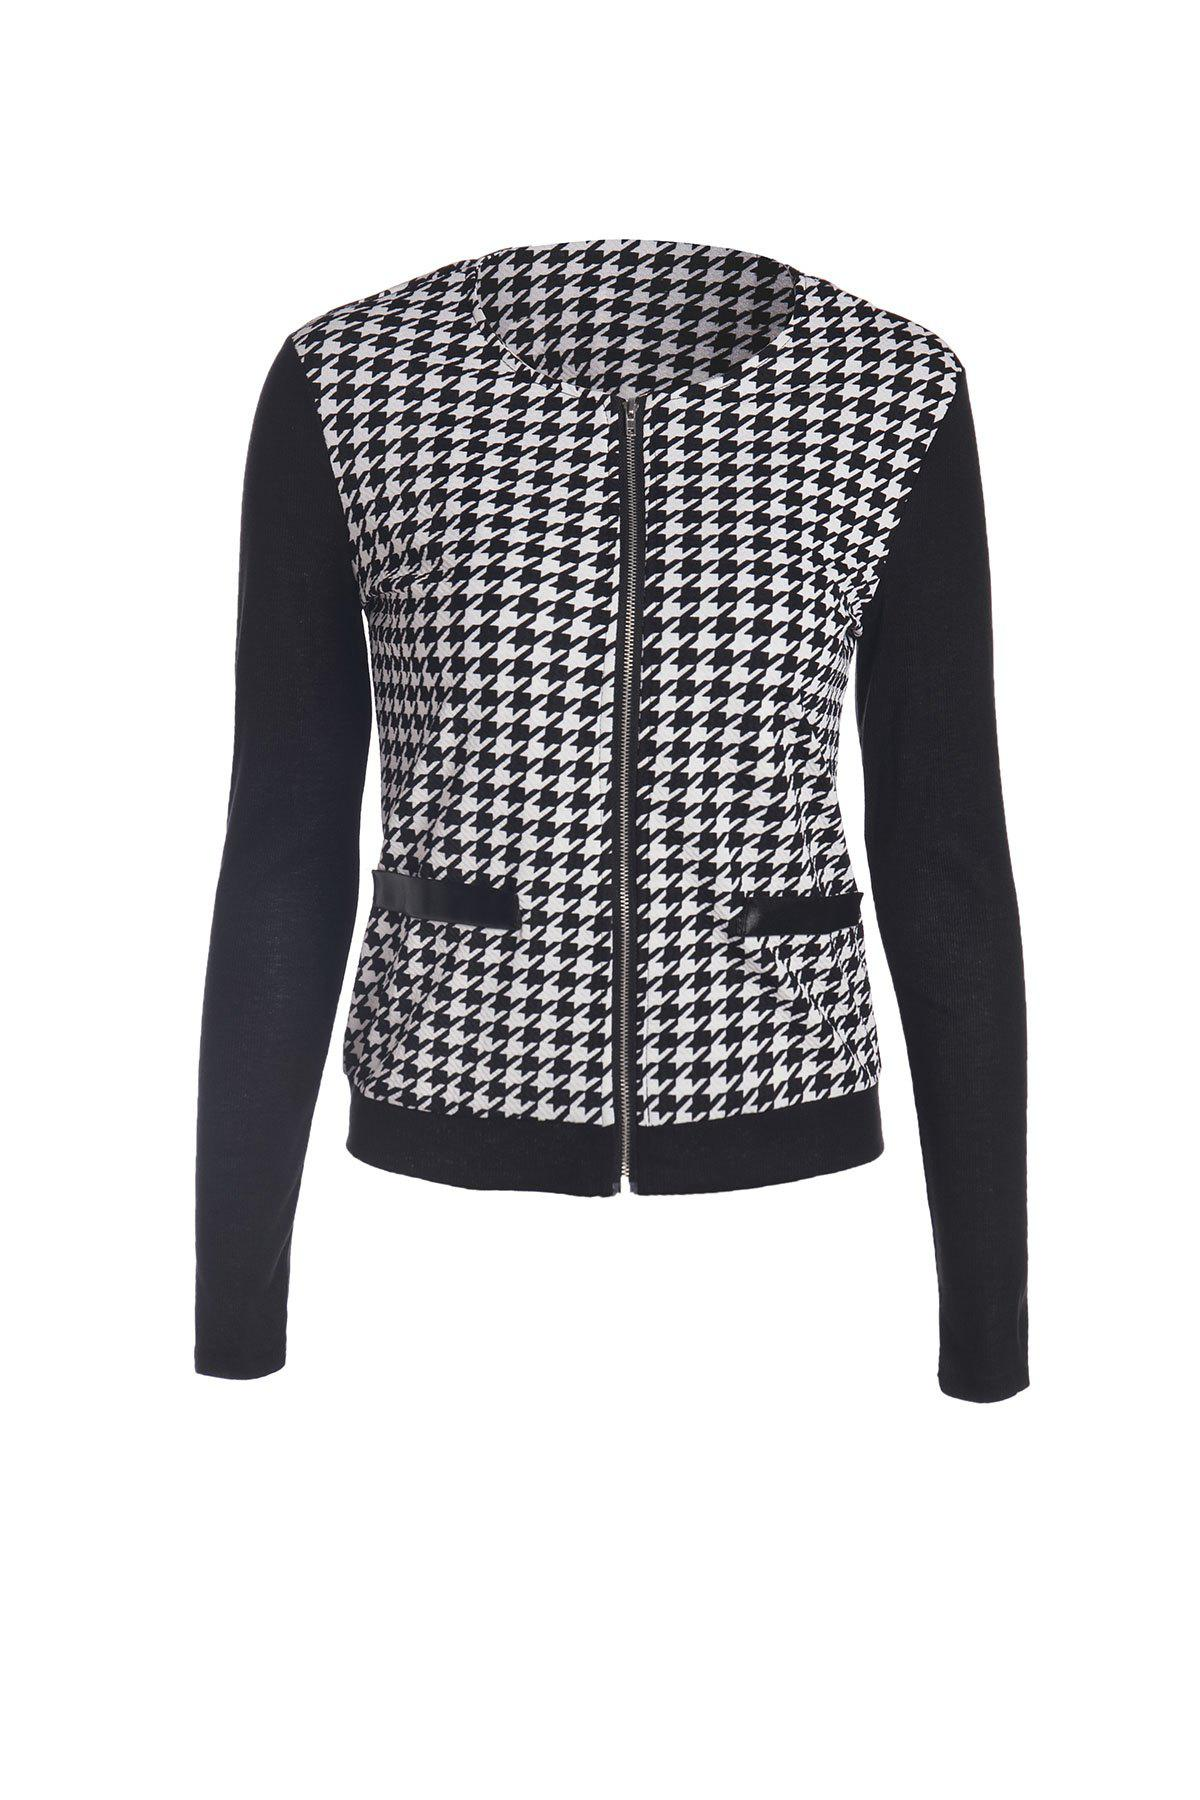 Stylish Color Block Houndstooth Printed Coat For Women - WHITE/BLACK L